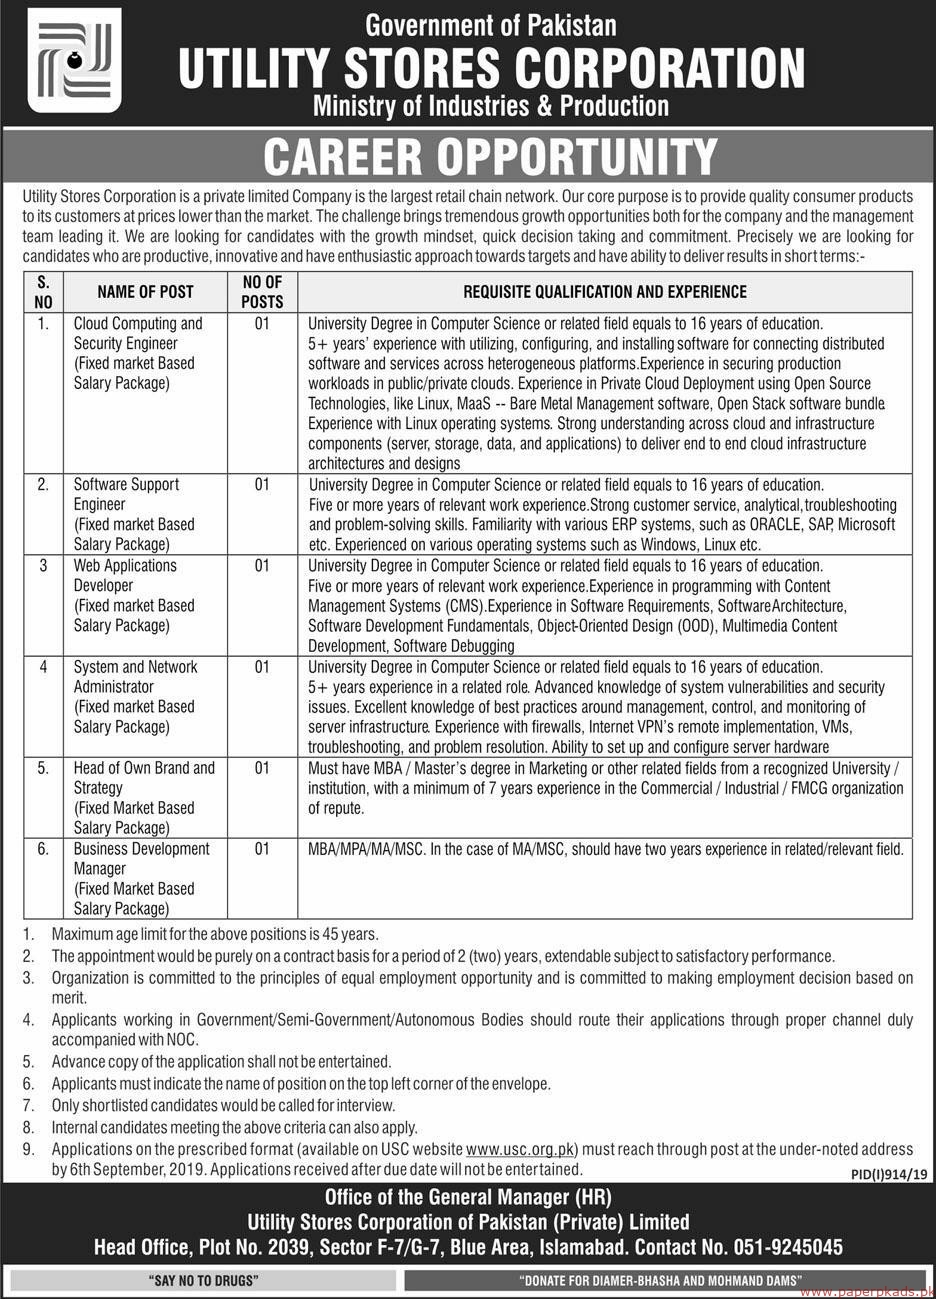 Ministry of Industries & Production Jobs 2019 Latest